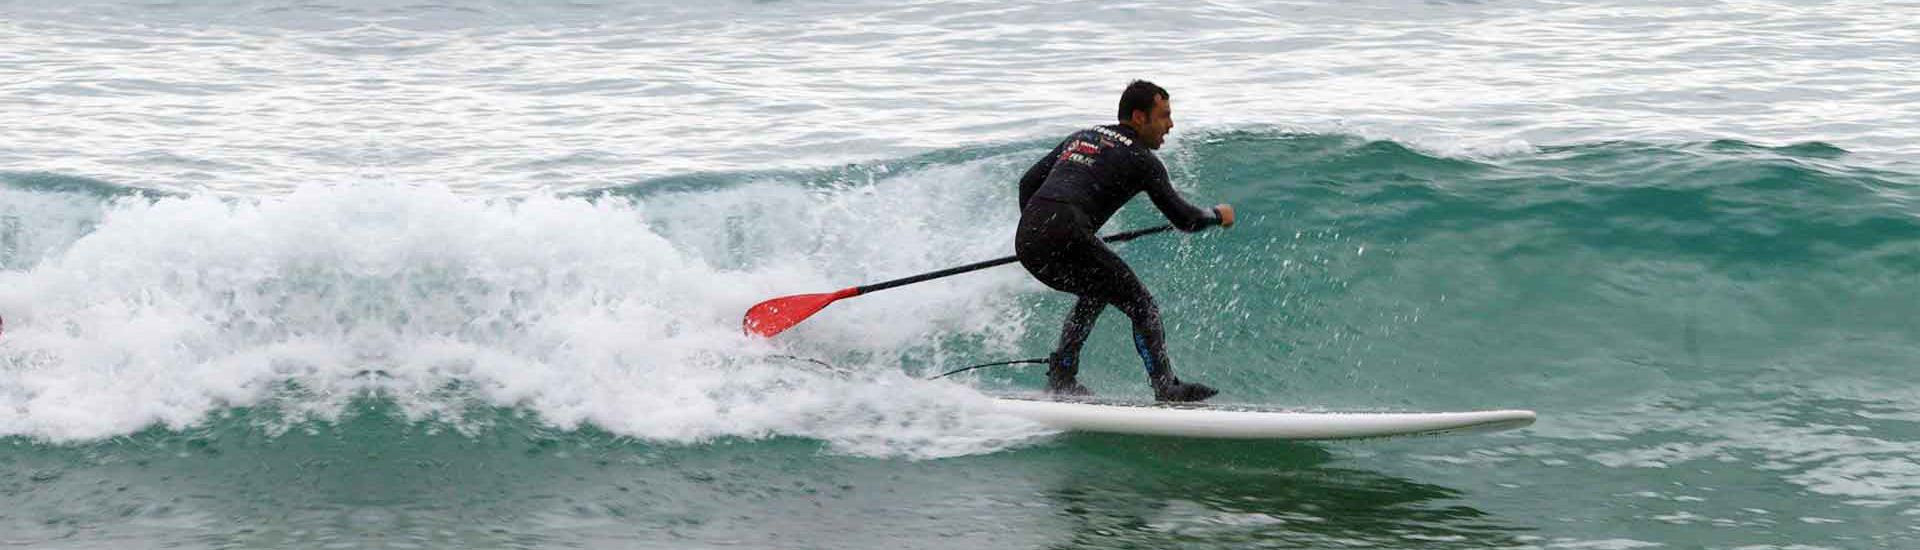 Stand-up paddleboard in waves